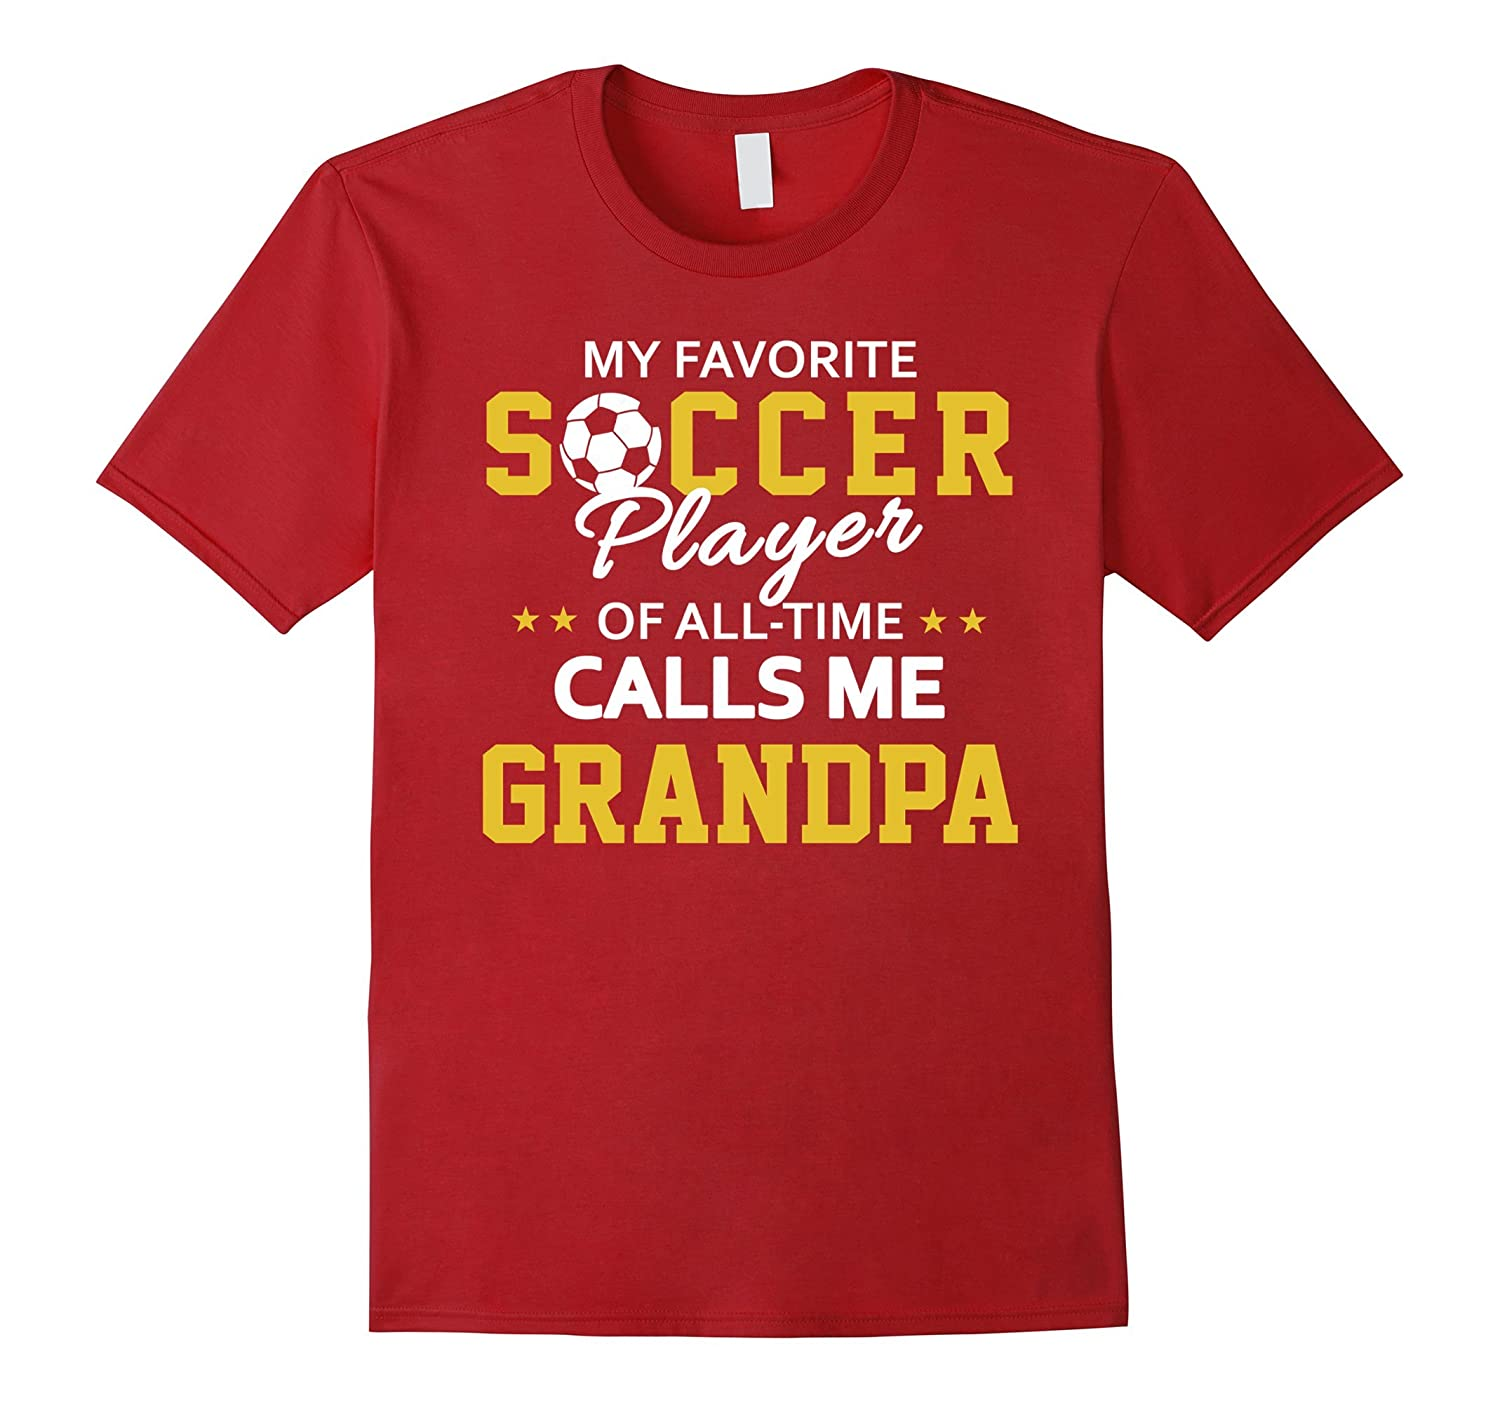 Mens Soccer Grandpa Grandson Granddaughter Shirt